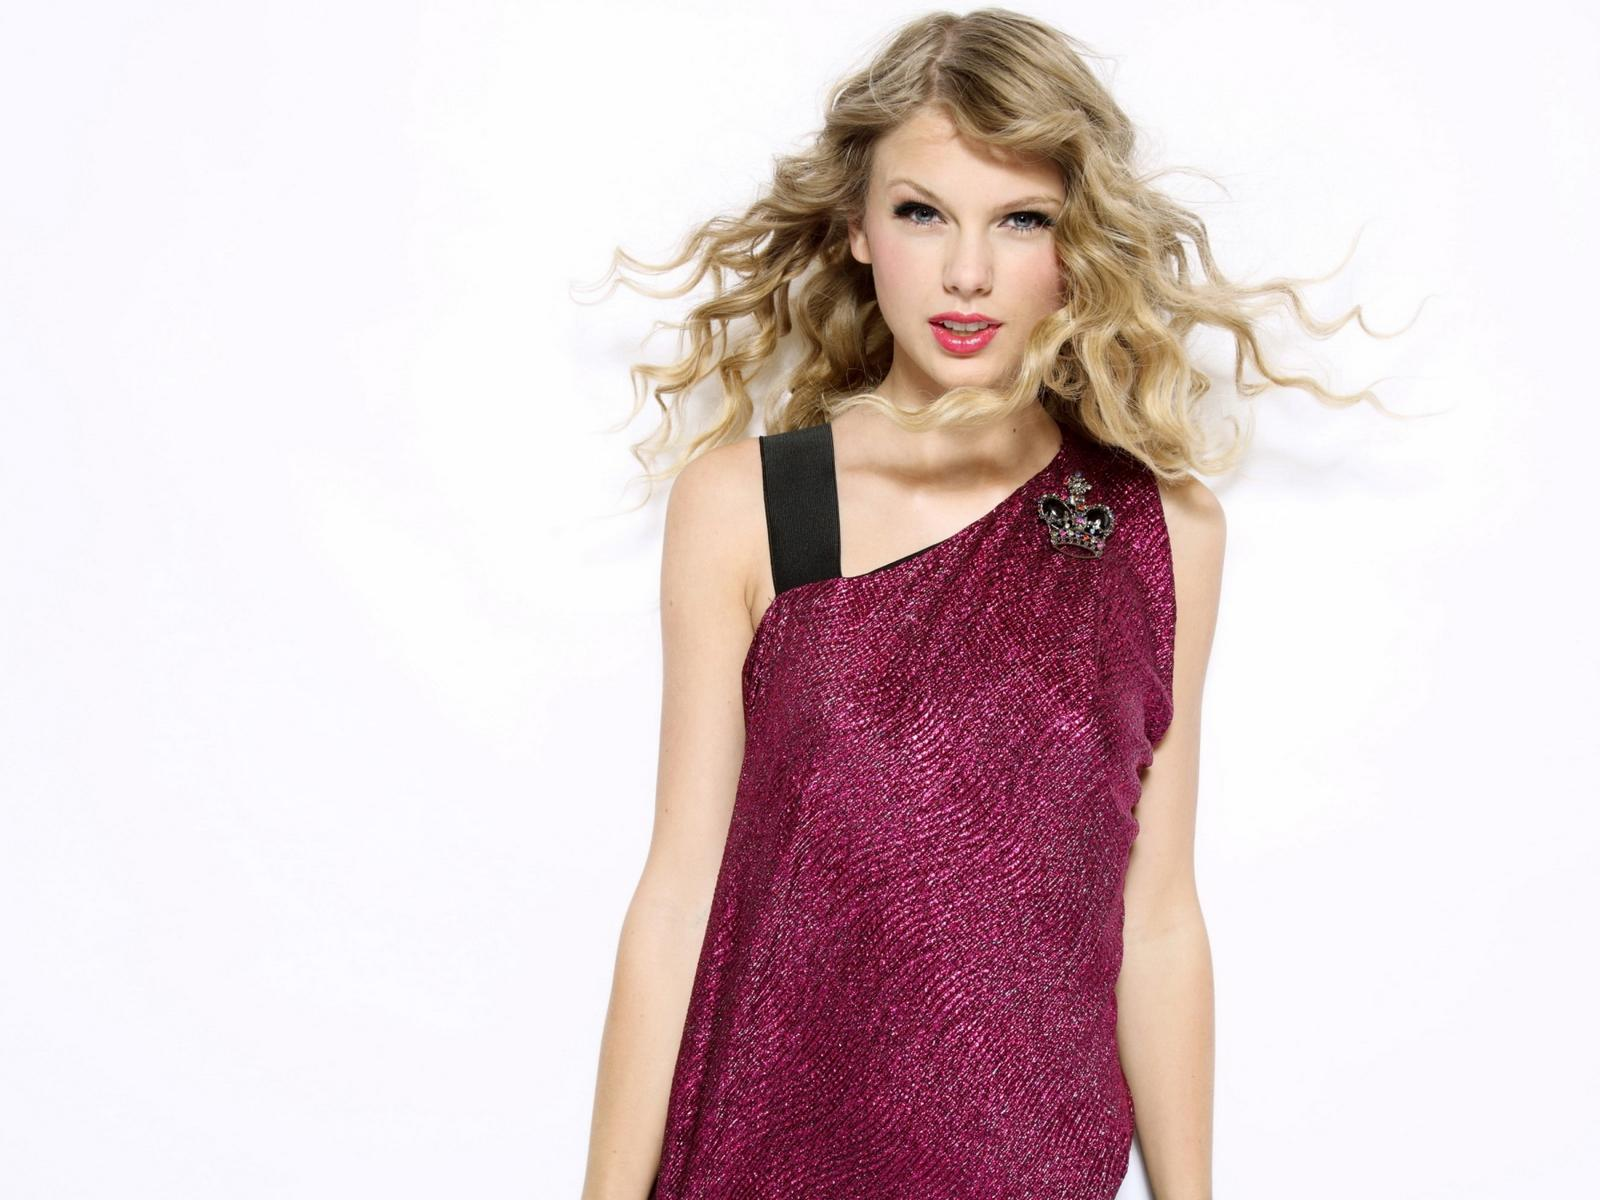 Taylor Swift Pictures club images taylor swift cute♥ HD wallpaper and background photos (36464933)